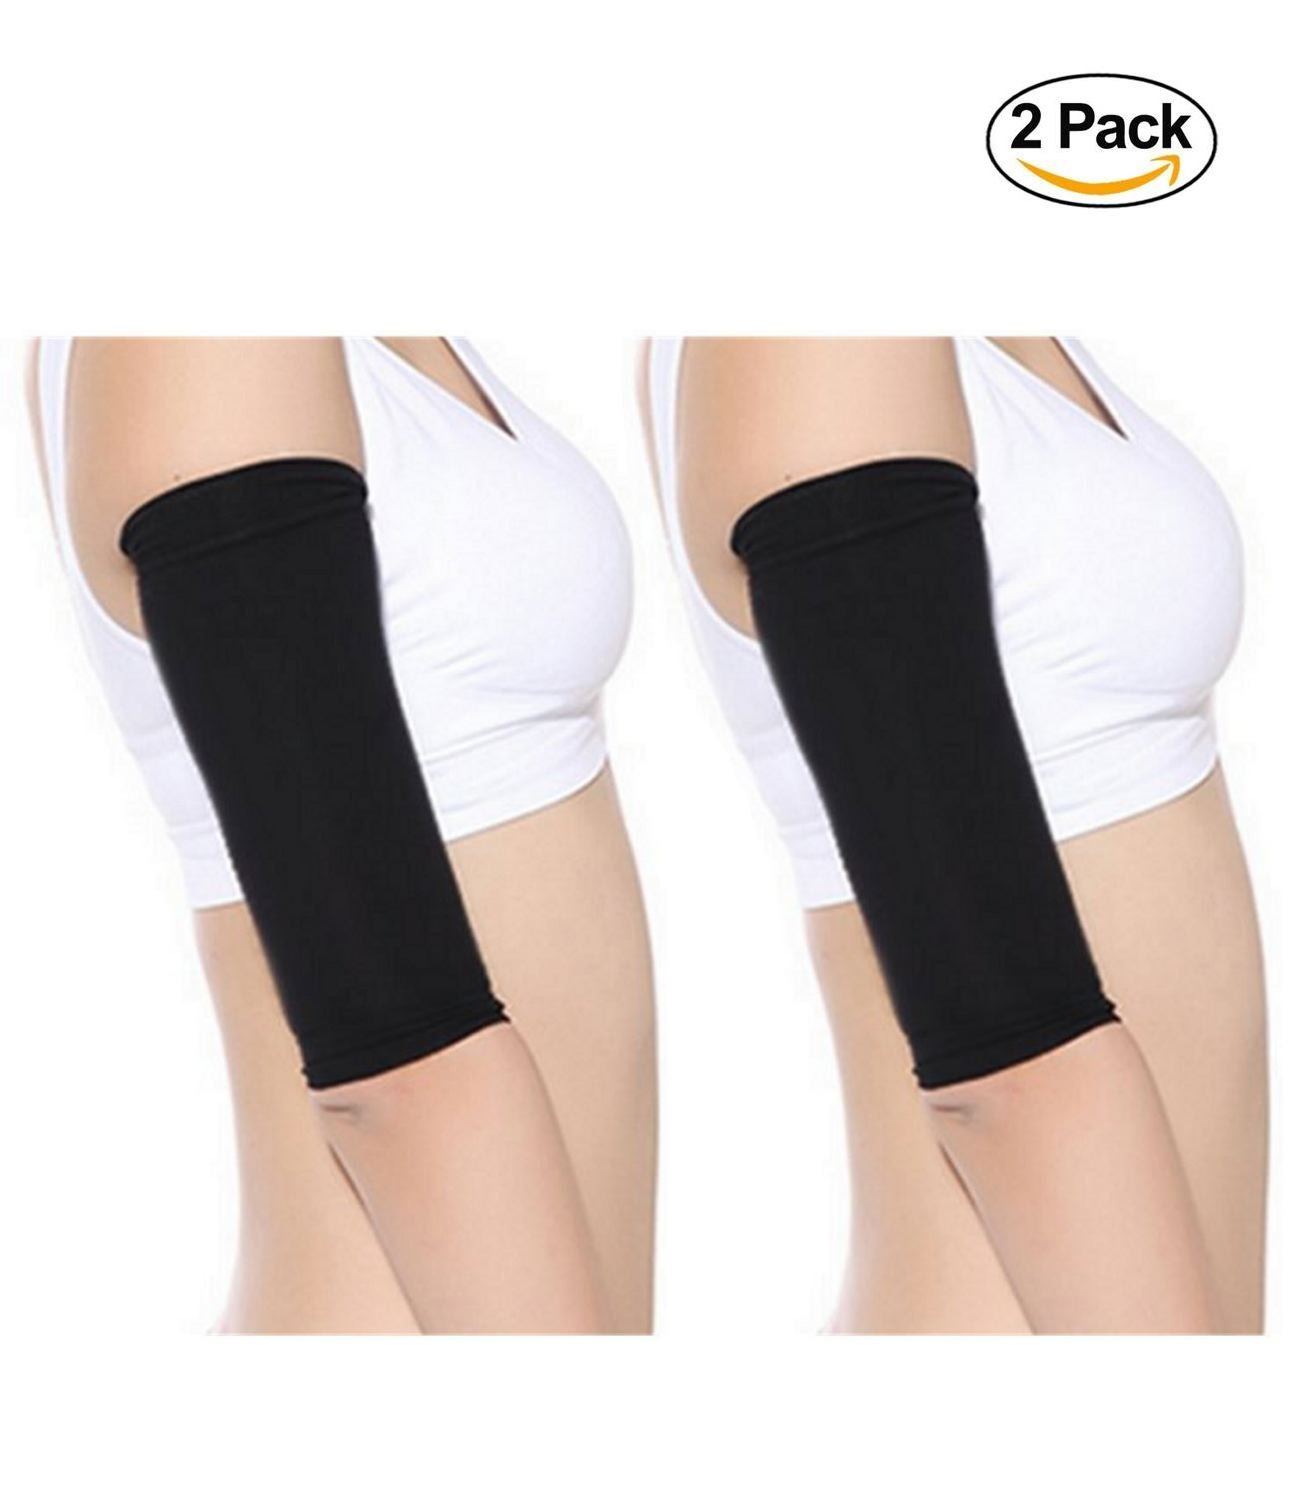 Starmace 2 Pack Slimming Arms Shaping Tone Energize Upper Arm Compression RV Sun Protection Support Sleeves (LRG, Black)